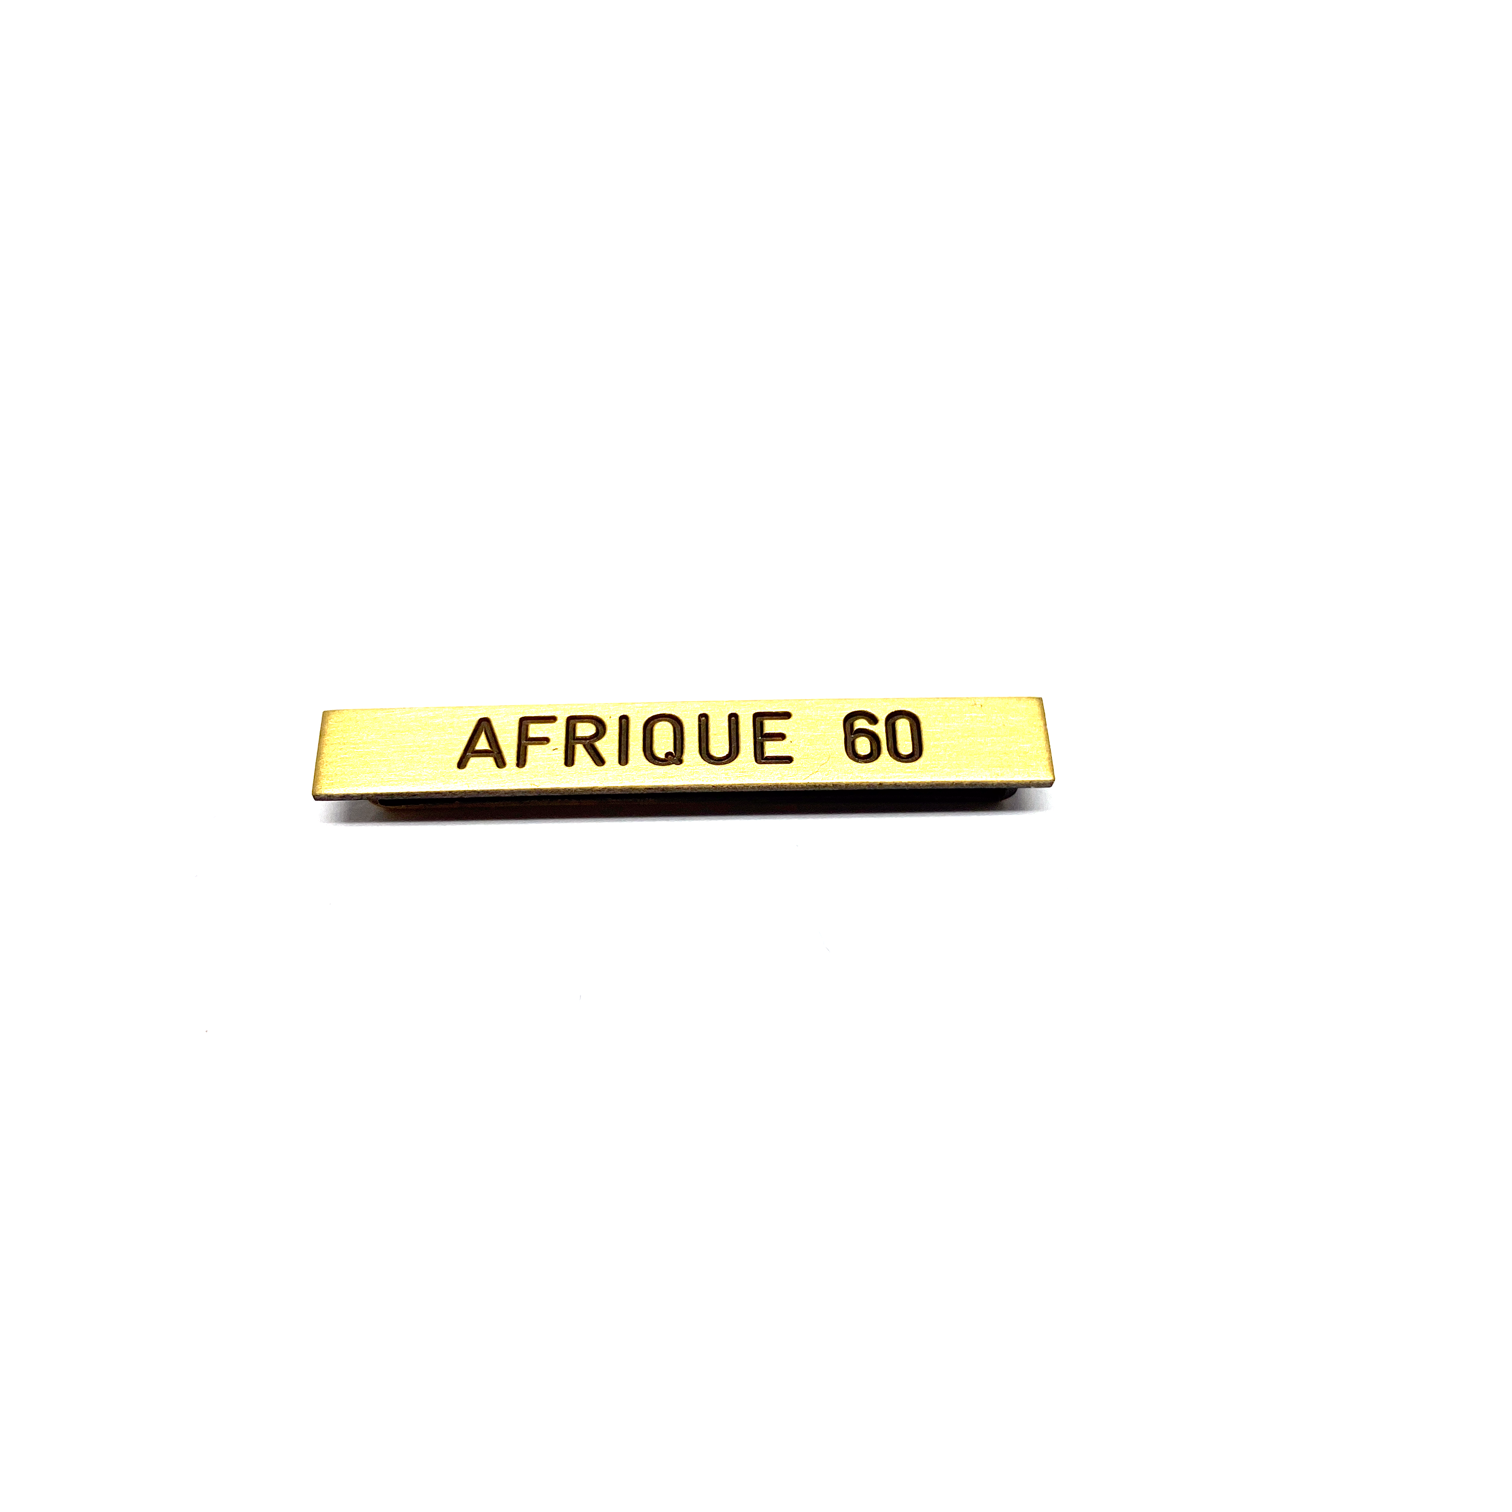 Bar Afrique 60 for military medals